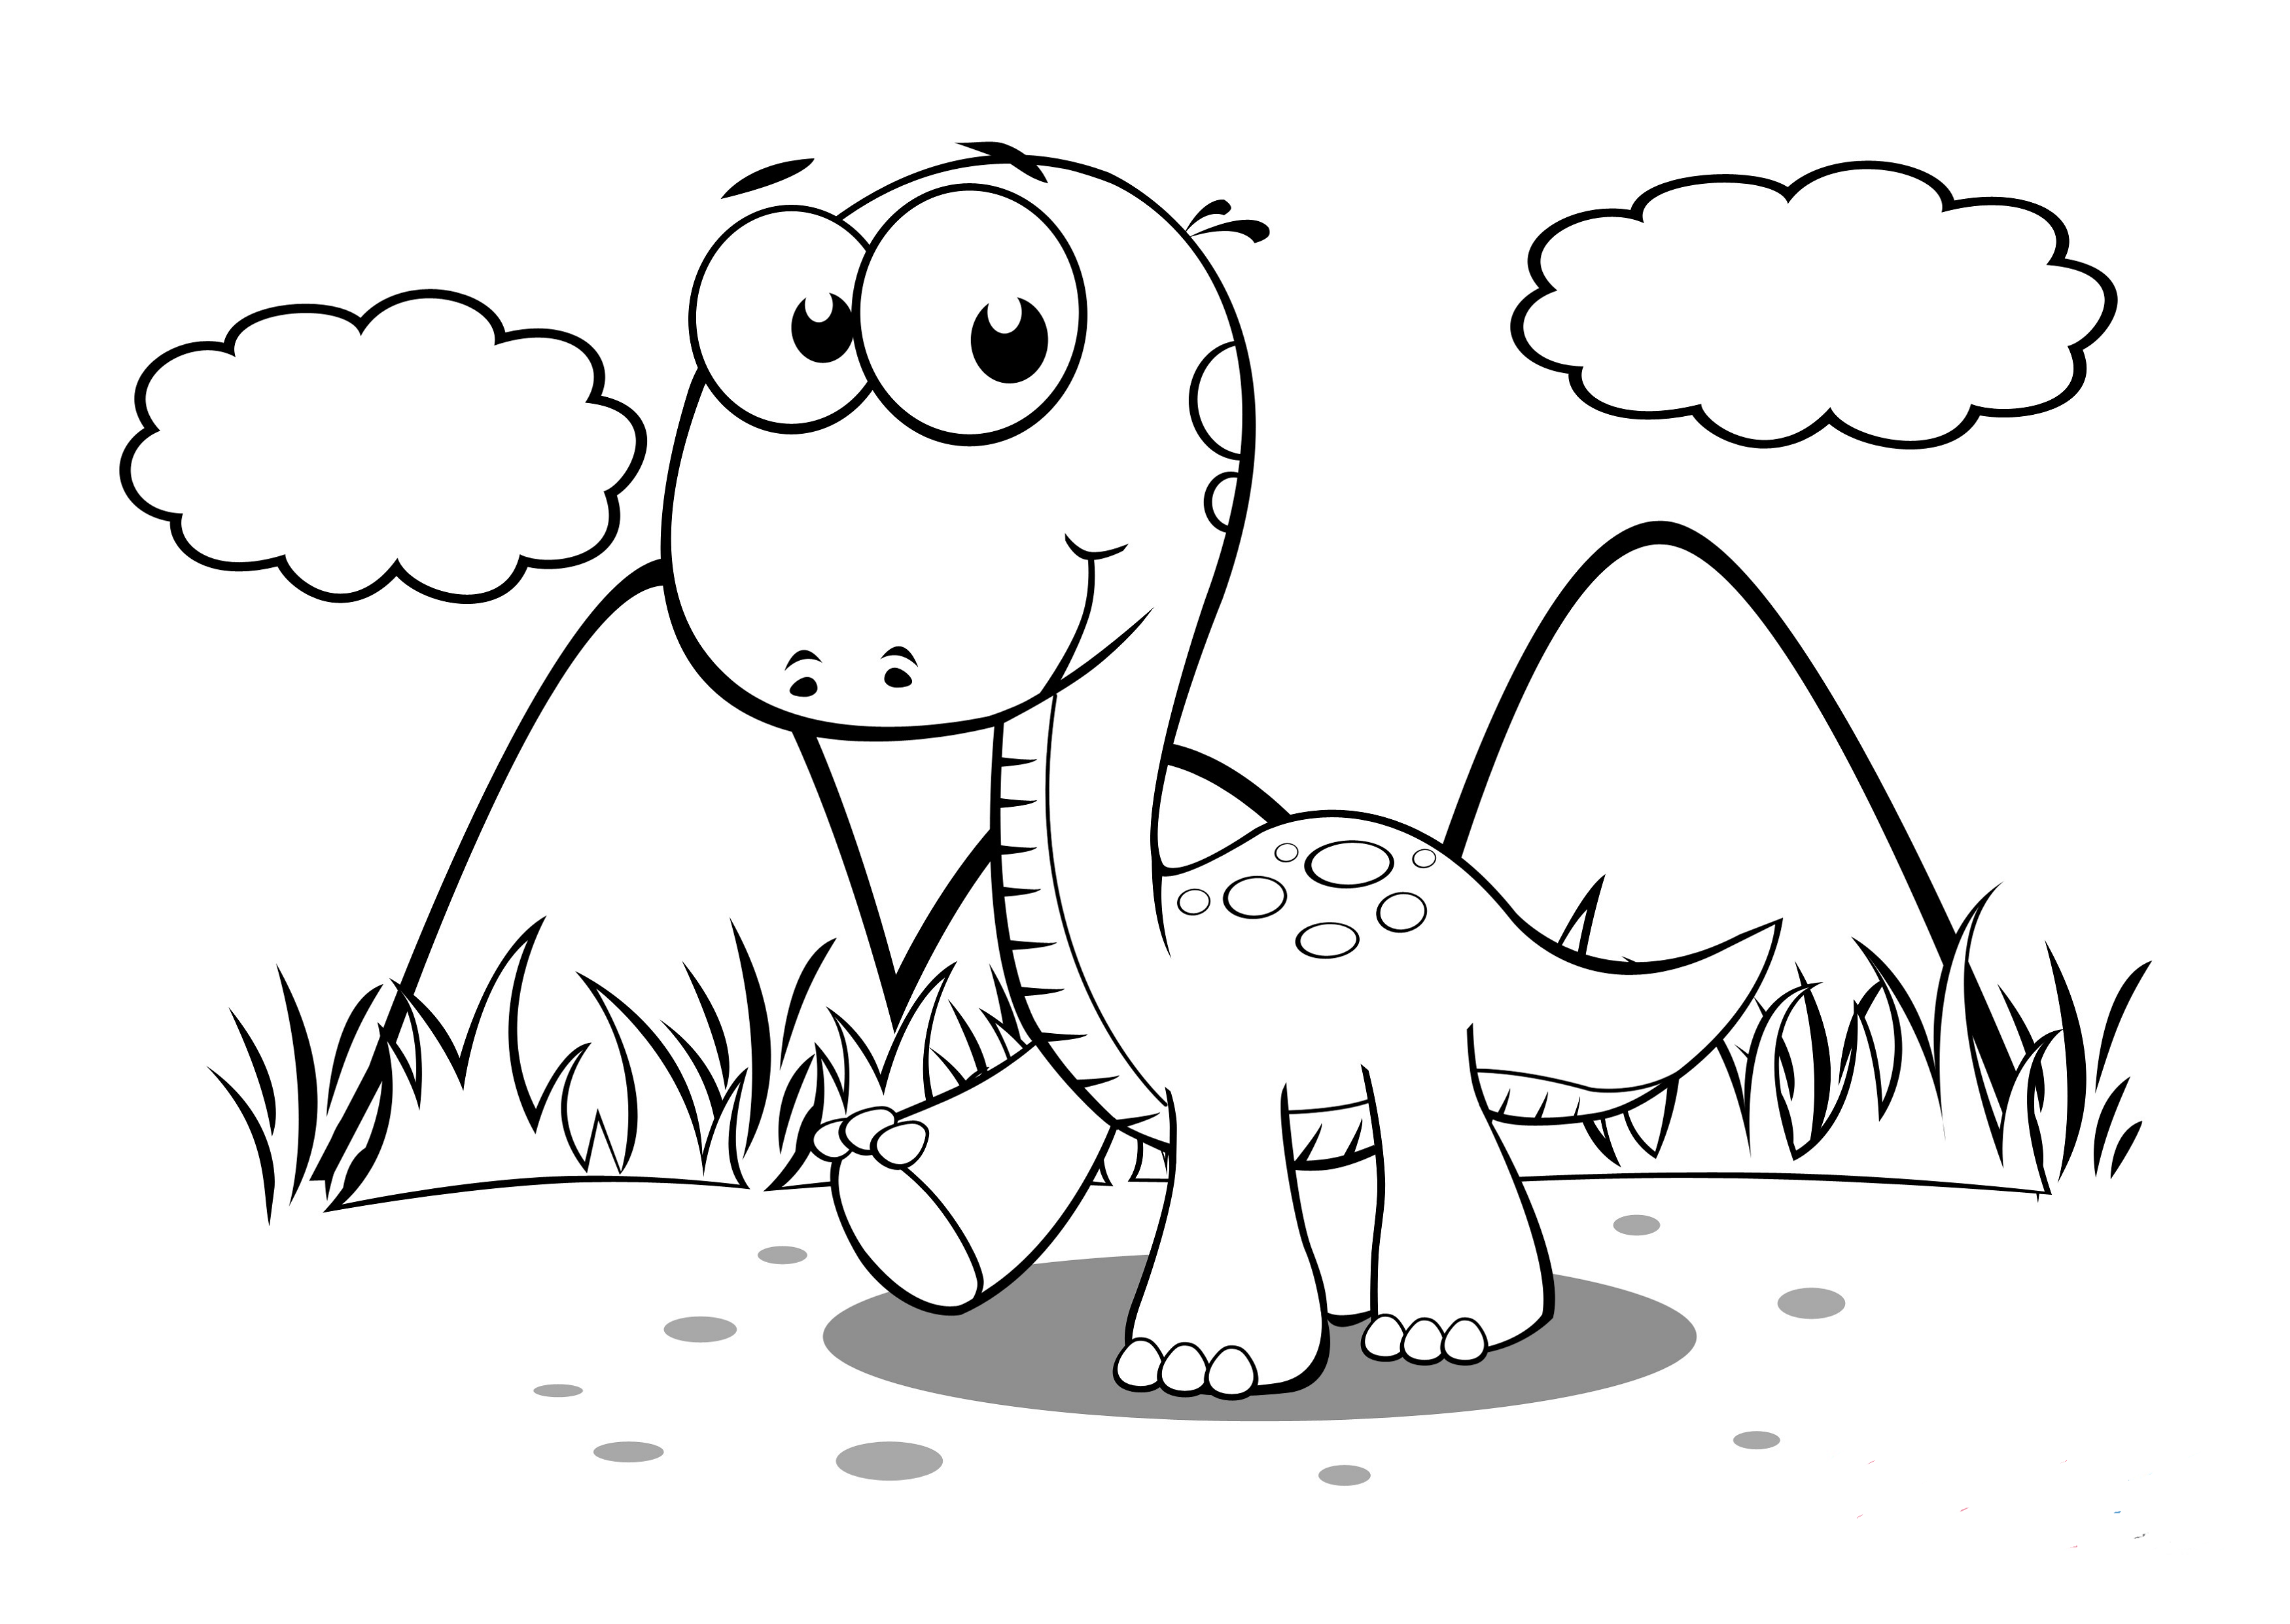 Baby Dinosaur Coloring Pages For Preschoolers Dinosaur Coloring Pages Cartoon Coloring Pages Dinosaur Coloring